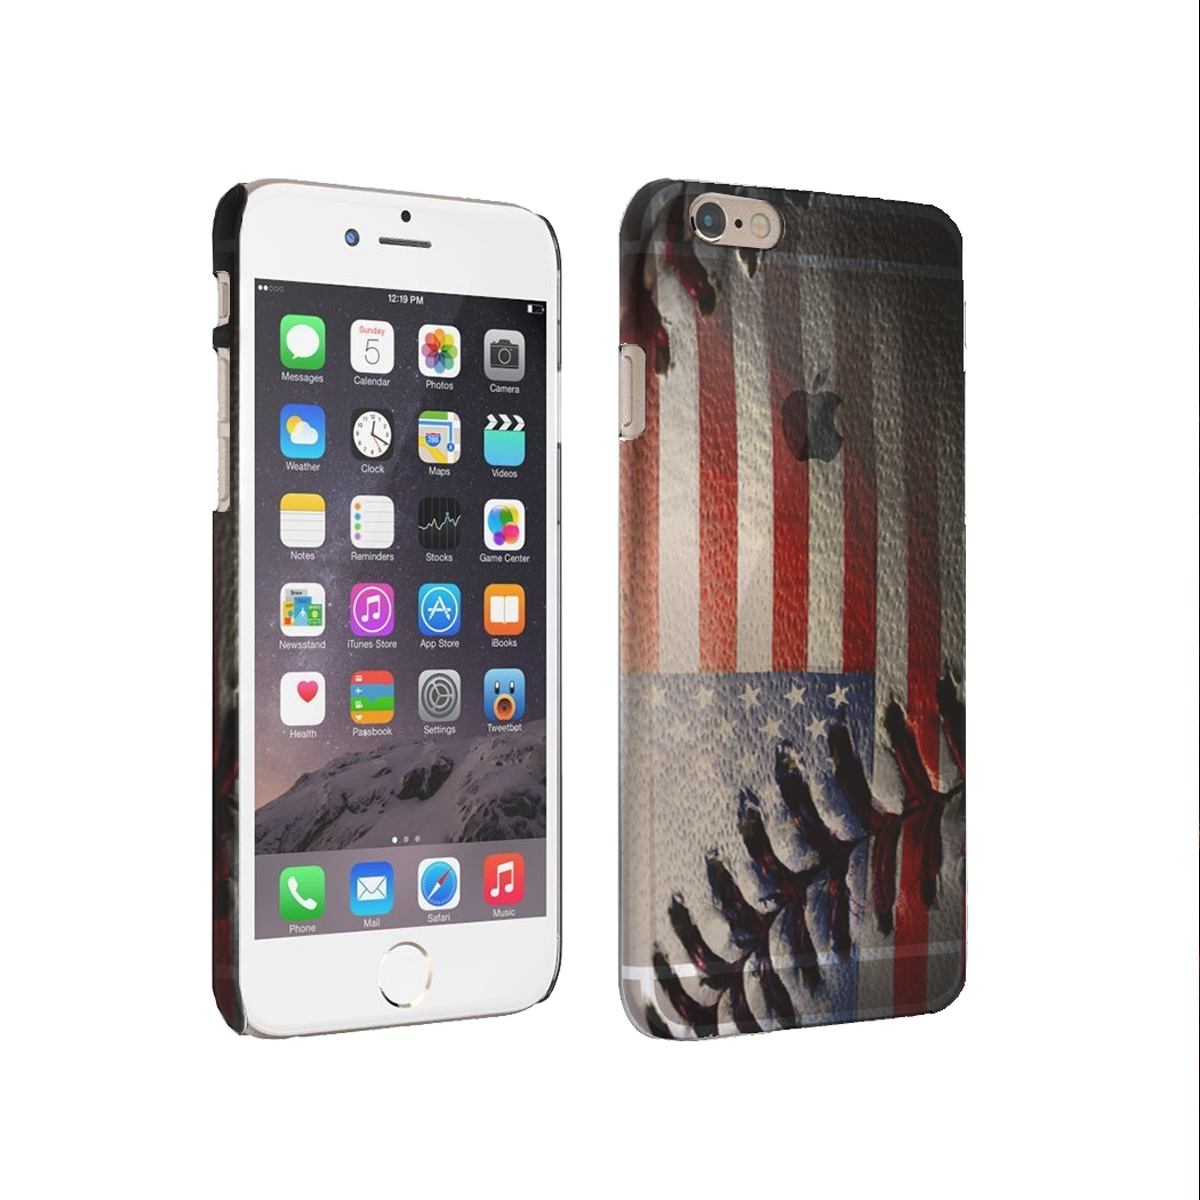 KuzmarK iPhone 6 Plus Rubber Cover Case - American Flag Baseball Stitch